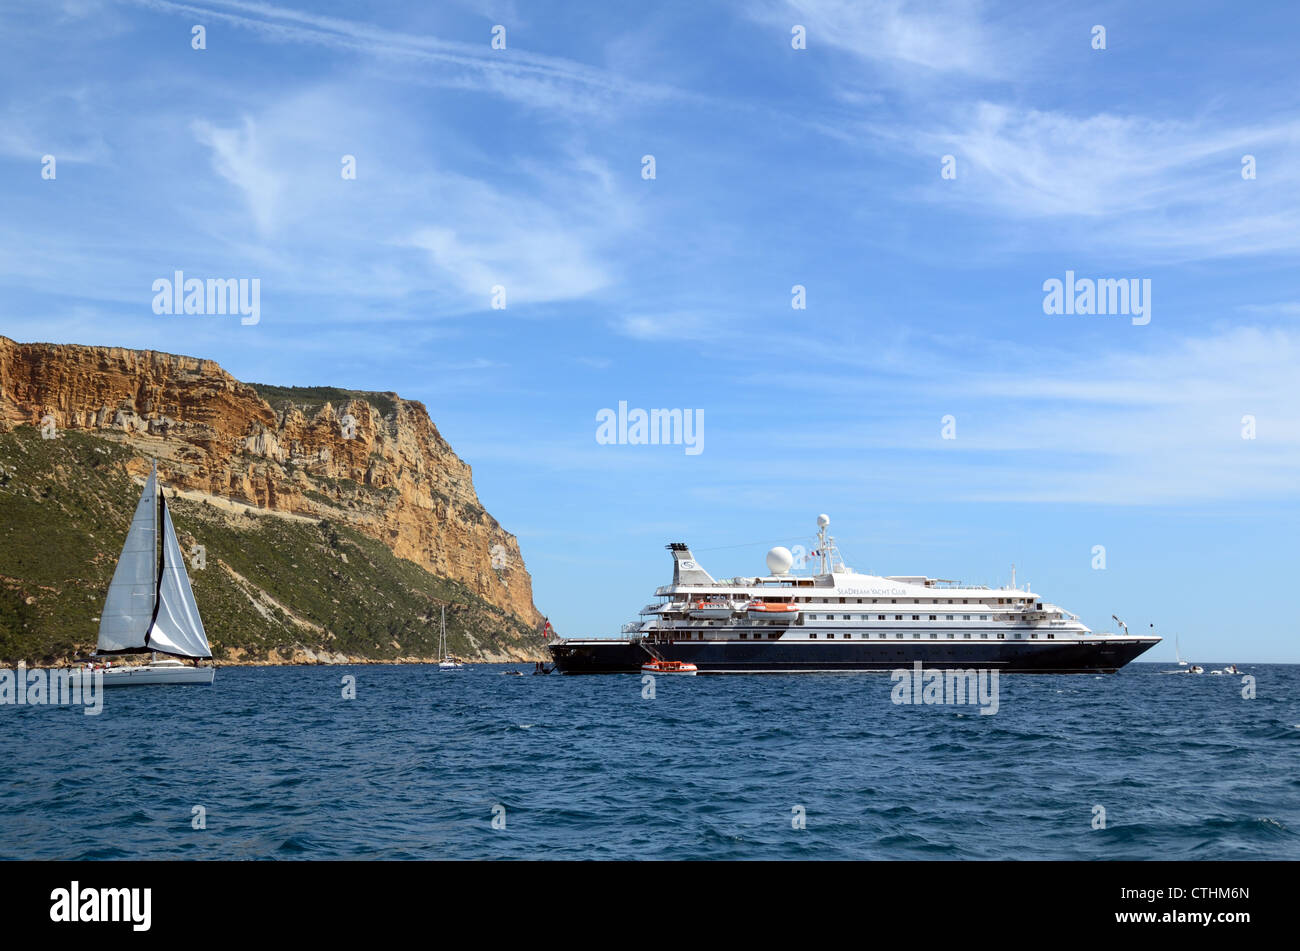 Mediterranean Cruise Ship Anchored off Cap Canaille Cliffs in the Bay of Cassis Provence France - Stock Image